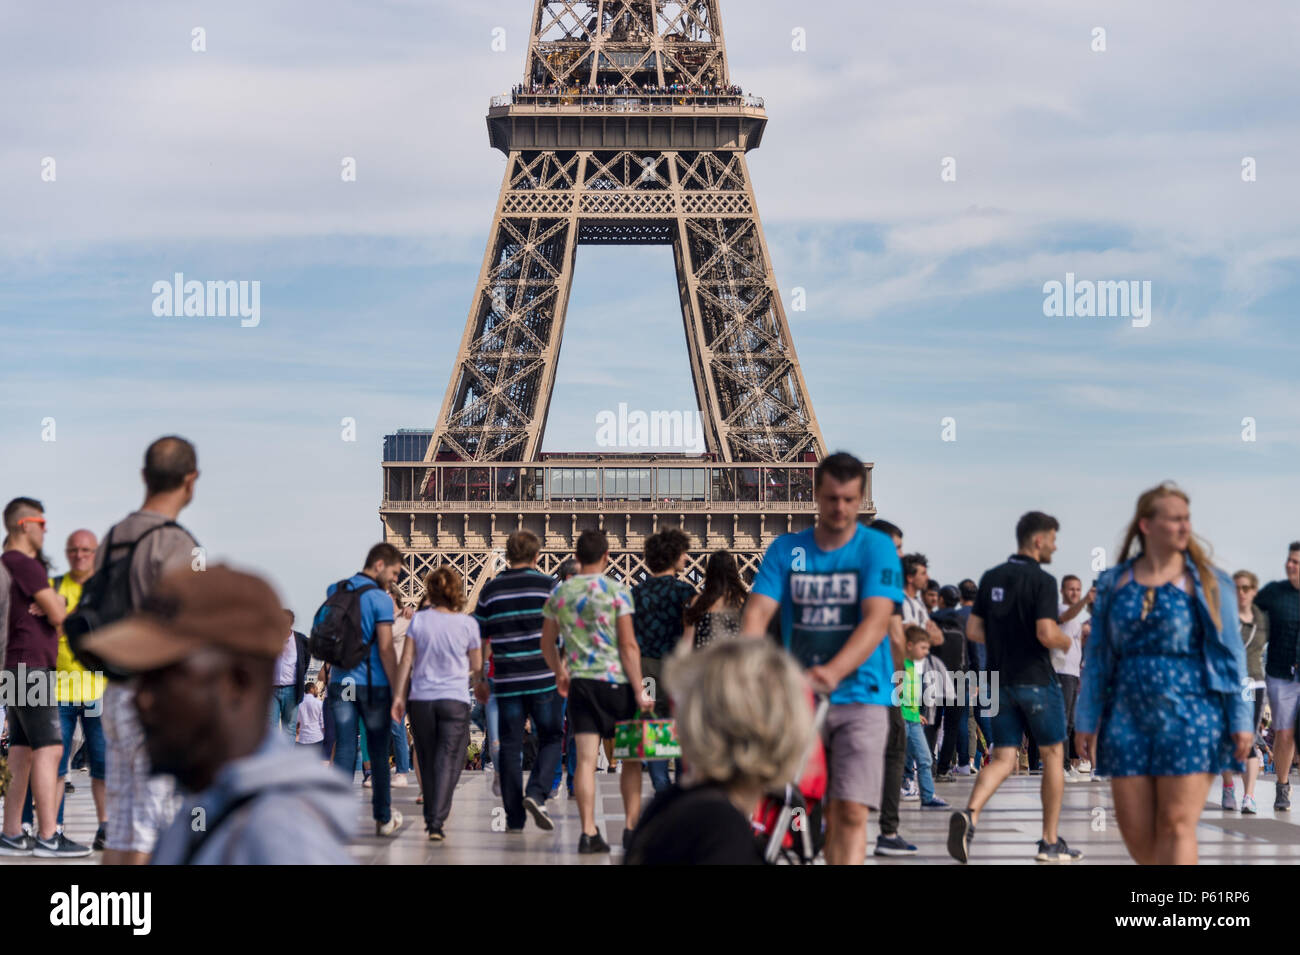 Paris, France - 23 June 2018: Eiffel Tower from Trocadero with many tourists in the foreground - Stock Image